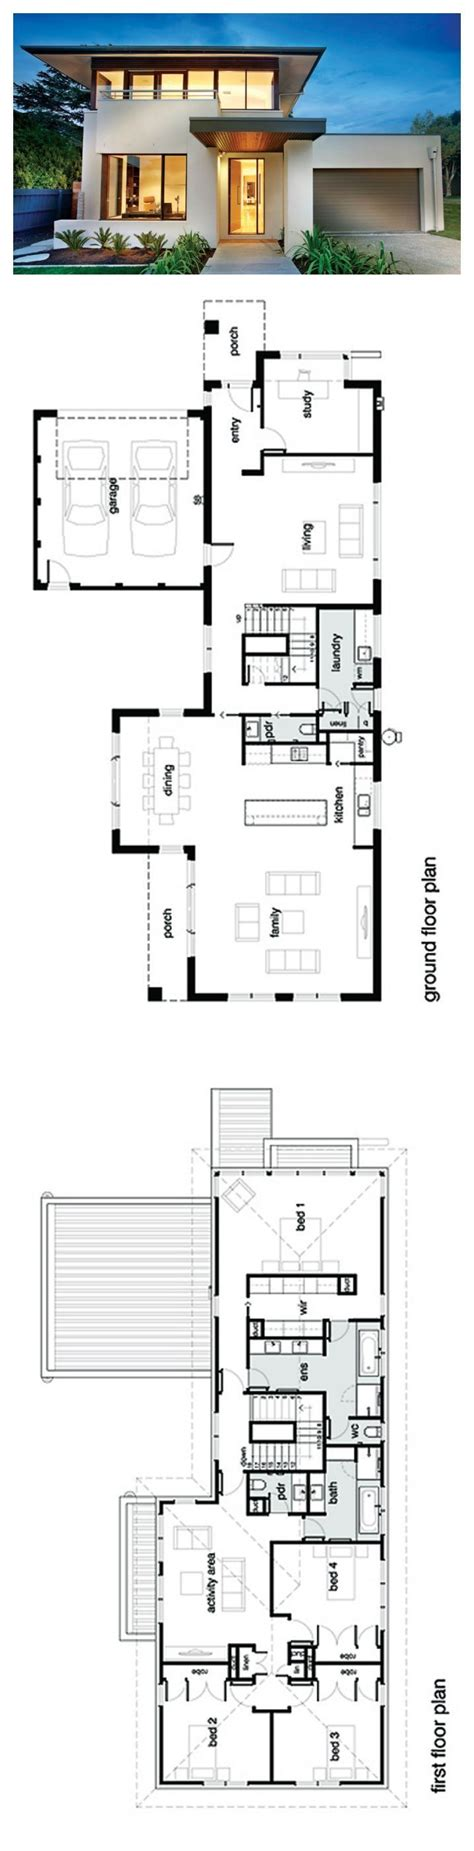 best 2 story house plans real estate investing bathroom modern story house